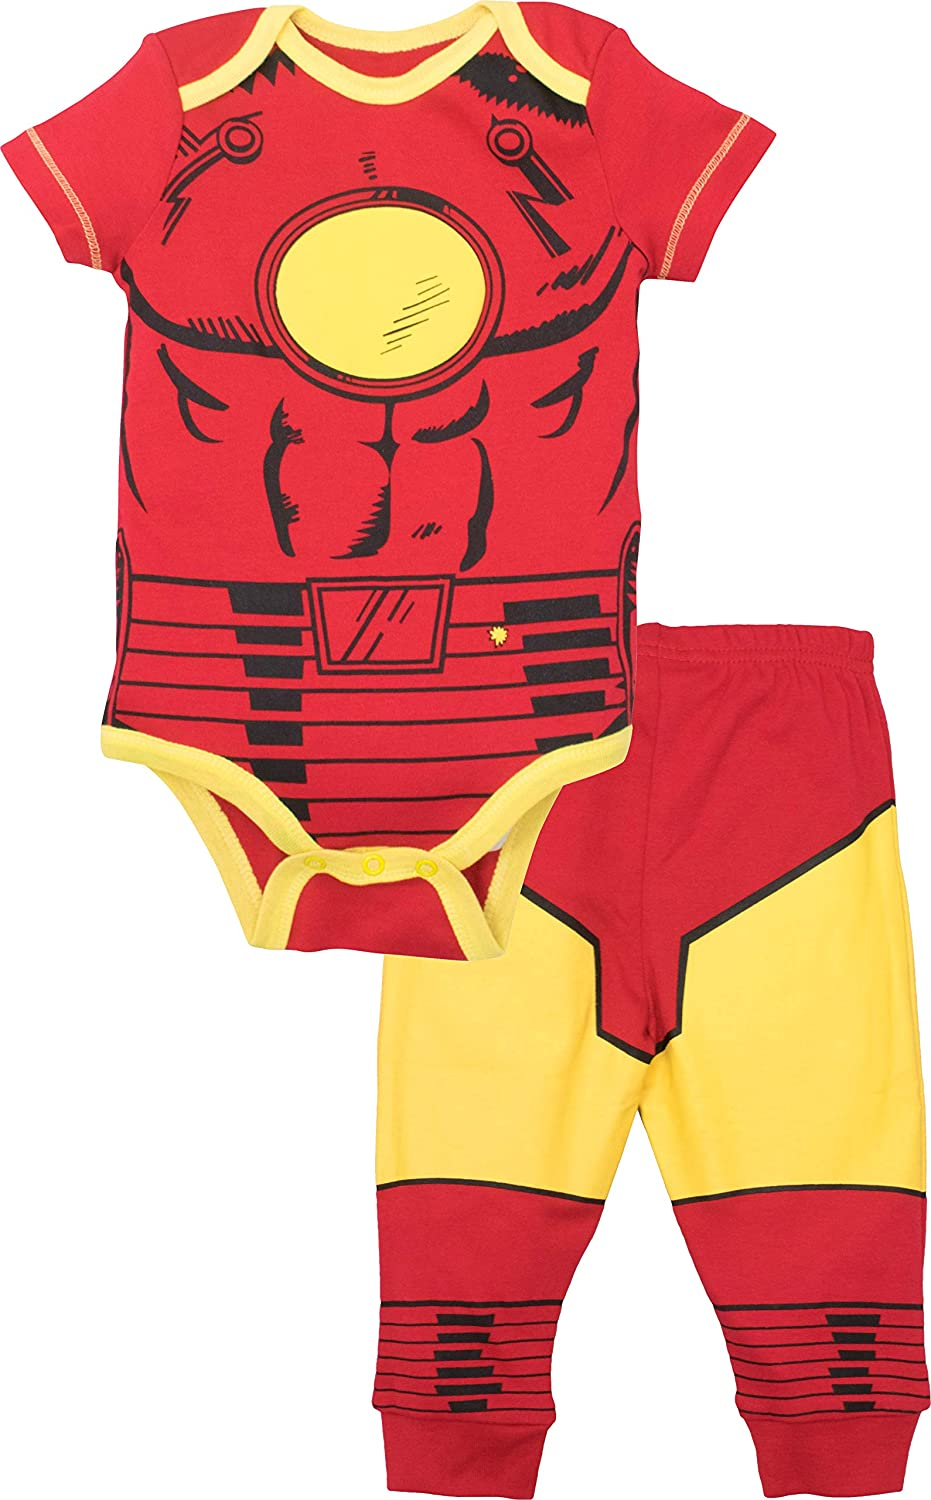 Marvel Avengers Baby Boys' Bodysuit & Pants Clothing Set